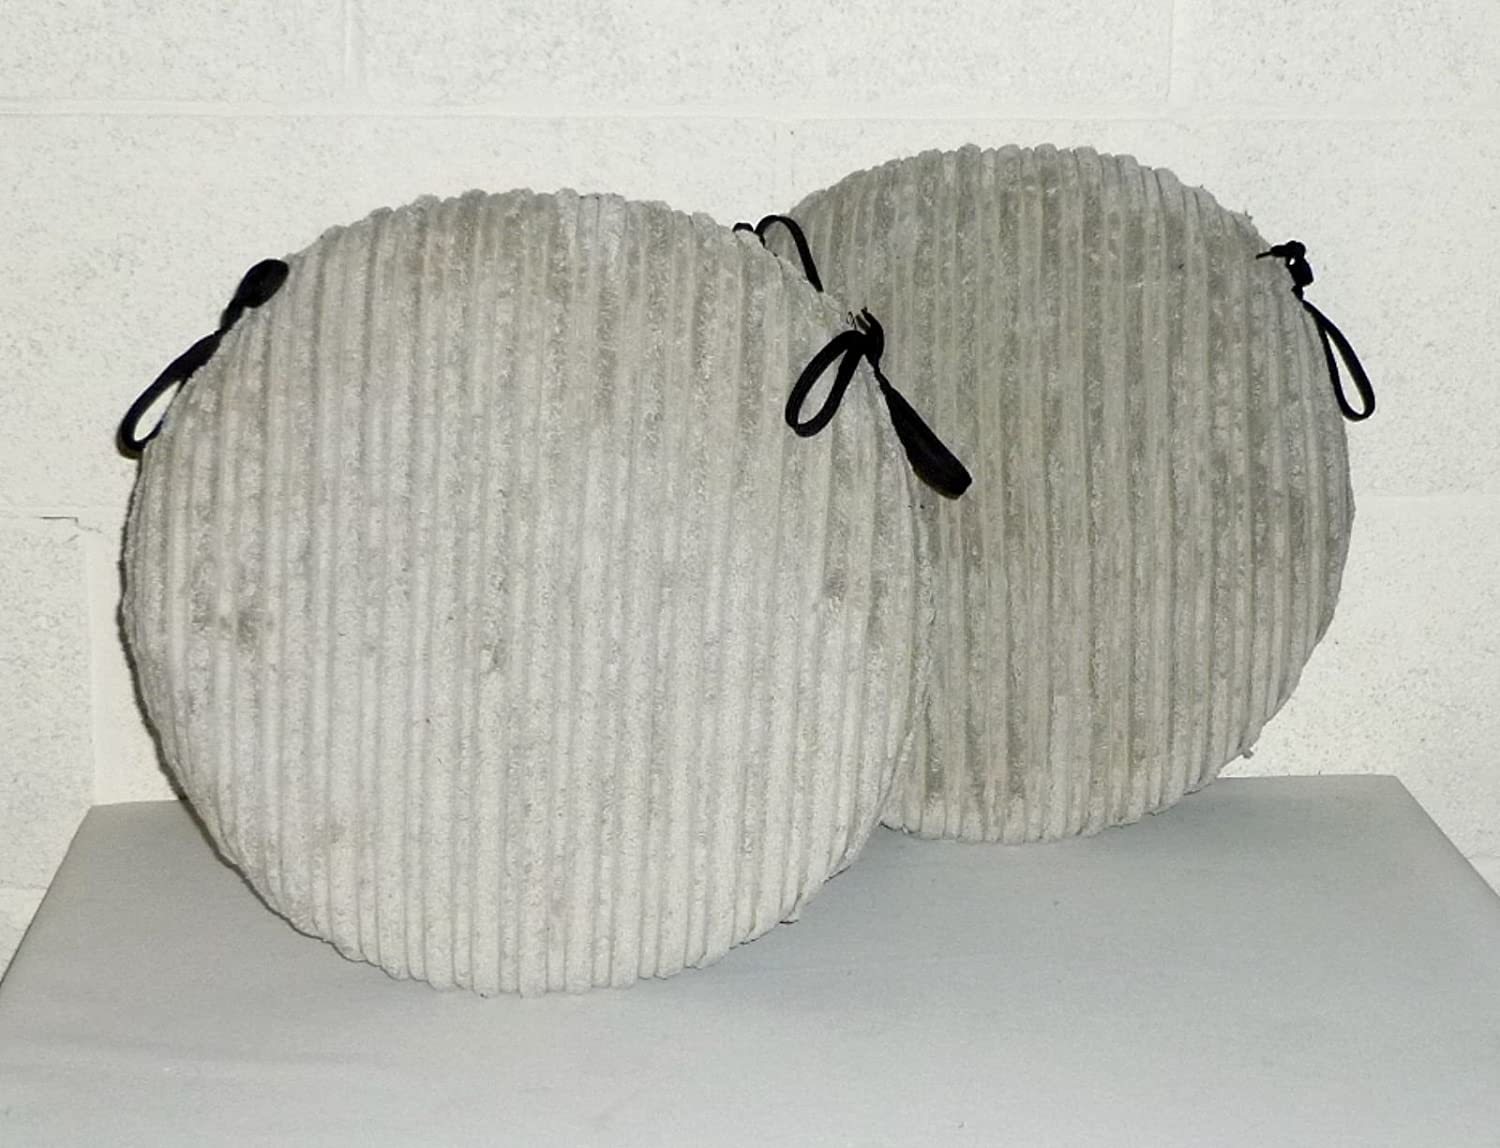 Seat Pads for Home /& Garden Furniture Beige Chunky Cord 2 x Zippy 20 Round Seat Cushions